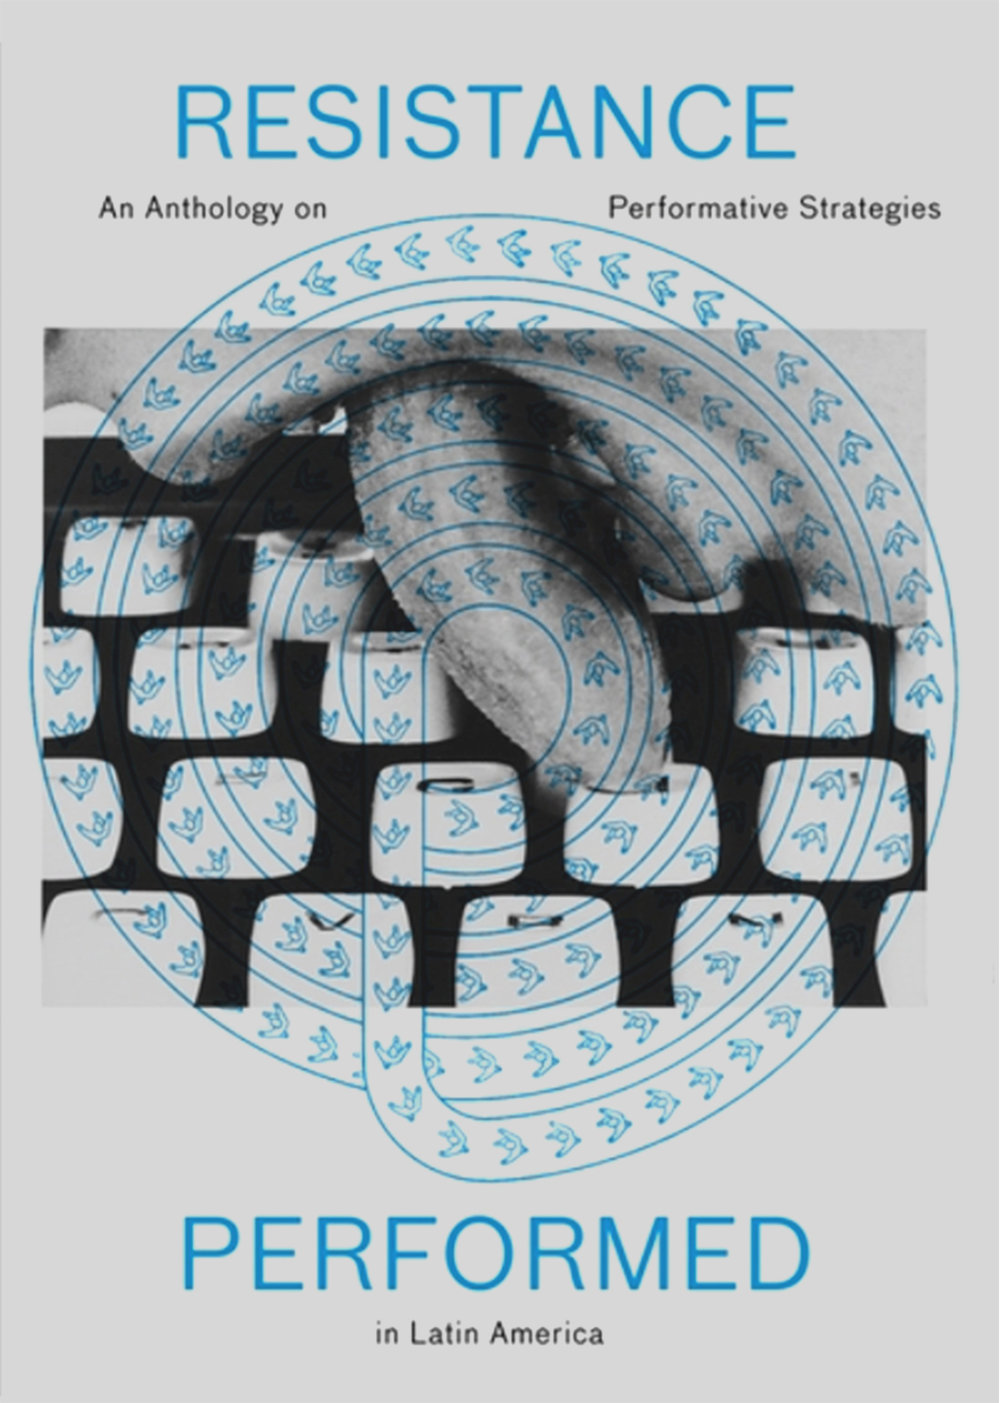 RESISTANCE PERFORMED: An Anthology on Aesthetic Strategies under Repressive Systems in Latin America  Authors: Rodrigo Alonso, Cornelia Huth, Miguel A. López, Heike Munder, Tobias Peper, Nelly Richard, Cristiana Tejo, Stefanie Wenger  Editors: Heike Munder, Raphael Gygax  220 pages,  English | Hardback, 27,5 x 20.8 cm.  Publisher JRP Ringier and the Migros Museum für Gegenwartskunst, Zürich.  ISBN 9783037644461  The publication Resistance Performed—Aesthetic Strategies under Repressive Systems in Latin America addresses performative artistic strategies as a lived practice of resistance in Latin American countries such as Argentina, Brazil, and Chile. At the core of this reflection are historical positions that have borne witness to the way people have resisted repressive and dictatorial political systems in Latin America since the 1960s, often jeopardizing their own lives.  The intention is to conduct a fresh exploration of the idea of resistance through a dialogue with contemporary positions. Performative strategies have regained significance in contemporary artistic practice in recent years, raising the question of whether these are still viable strategies to undermine hierarchical structures or even change political systems today? The publication includes essays by Rodrigo Alonso, Miguel A. López, Heike Munder, Nelly Richard, and Cristiana Tejo, and reflects on topics such as Argentina and its sociopolitical and interventional aspect; gender issues; collective memory and the notion of body trauma in Latin America; the dictatorship in Chile; and ephemeral art, more specifically Mail art.